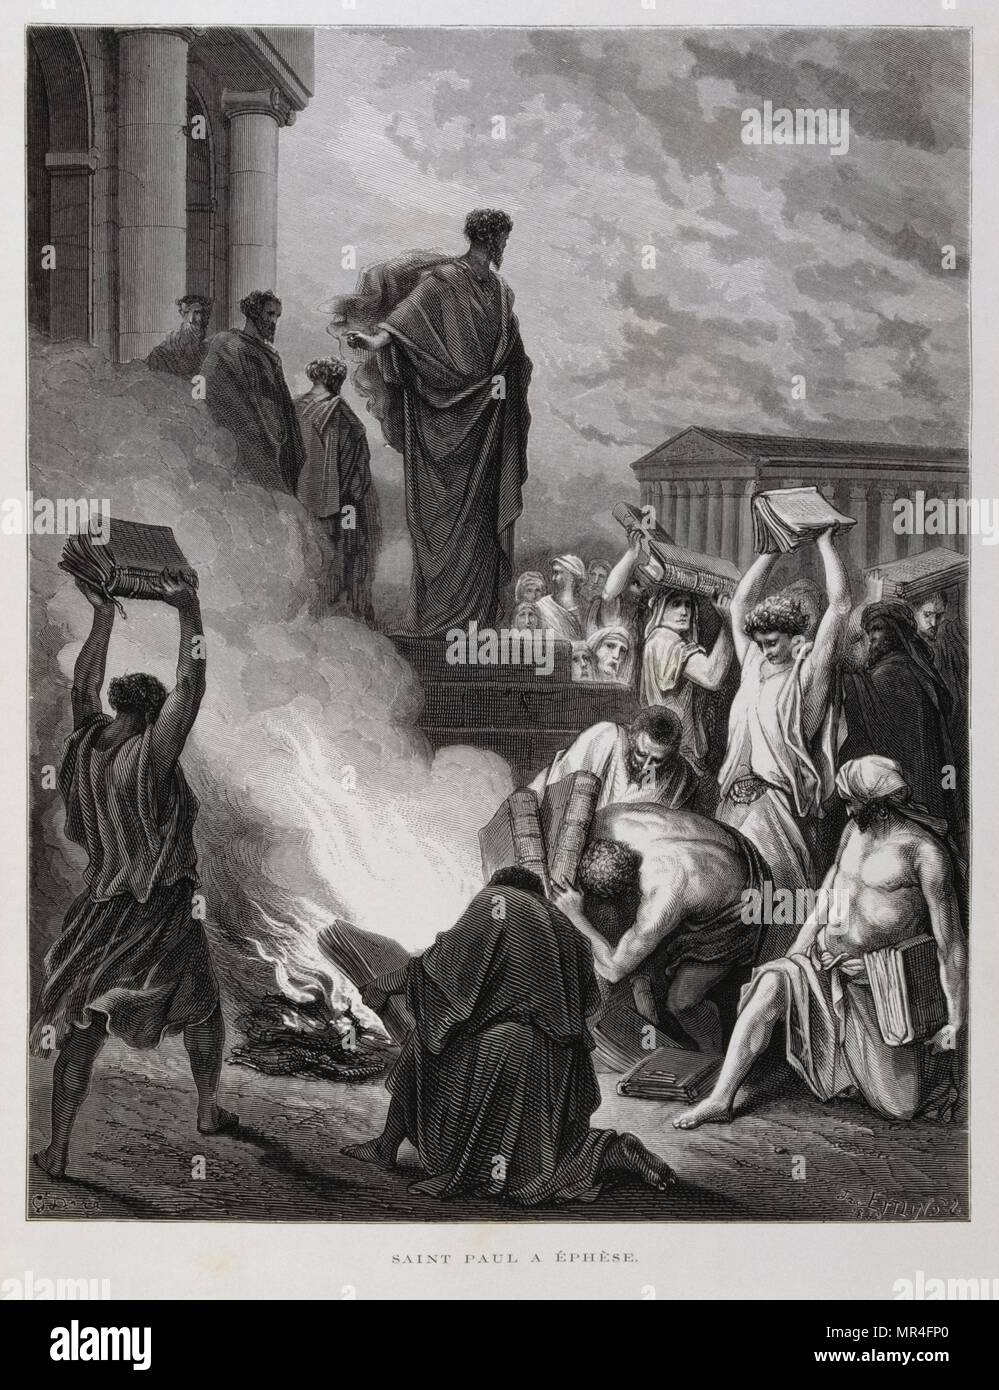 Saint Paul at Ephesus, Illustration from the Dore Bible 1866. In 1866, the French artist and illustrator Gustave Doré (1832–1883), published a series of 241 wood engravings for a new deluxe edition of the 1843 French translation of the Vulgate Bible, popularly known as the Bible de Tours. This new edition was known as La Grande Bible de Tours and its illustrations were immensely successful. - Stock Image